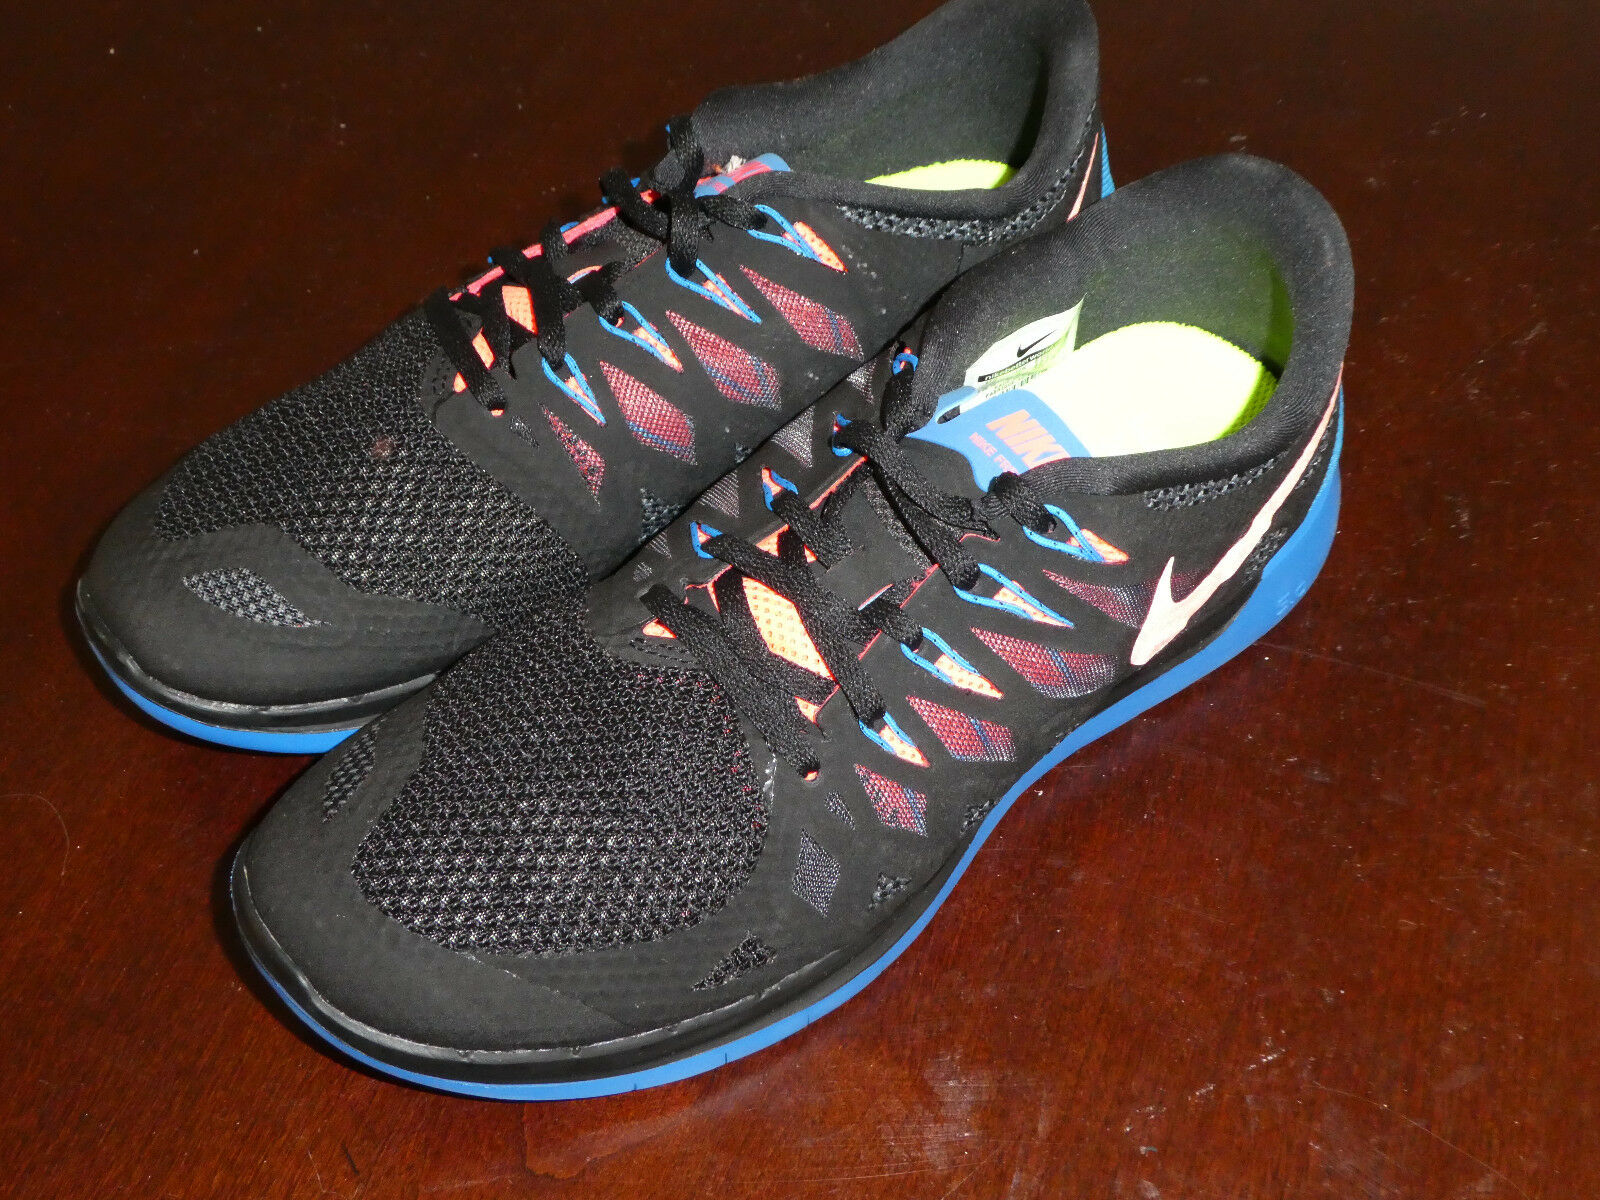 Nike Free 5.0 shoes sneakers new 555301 002 black blue